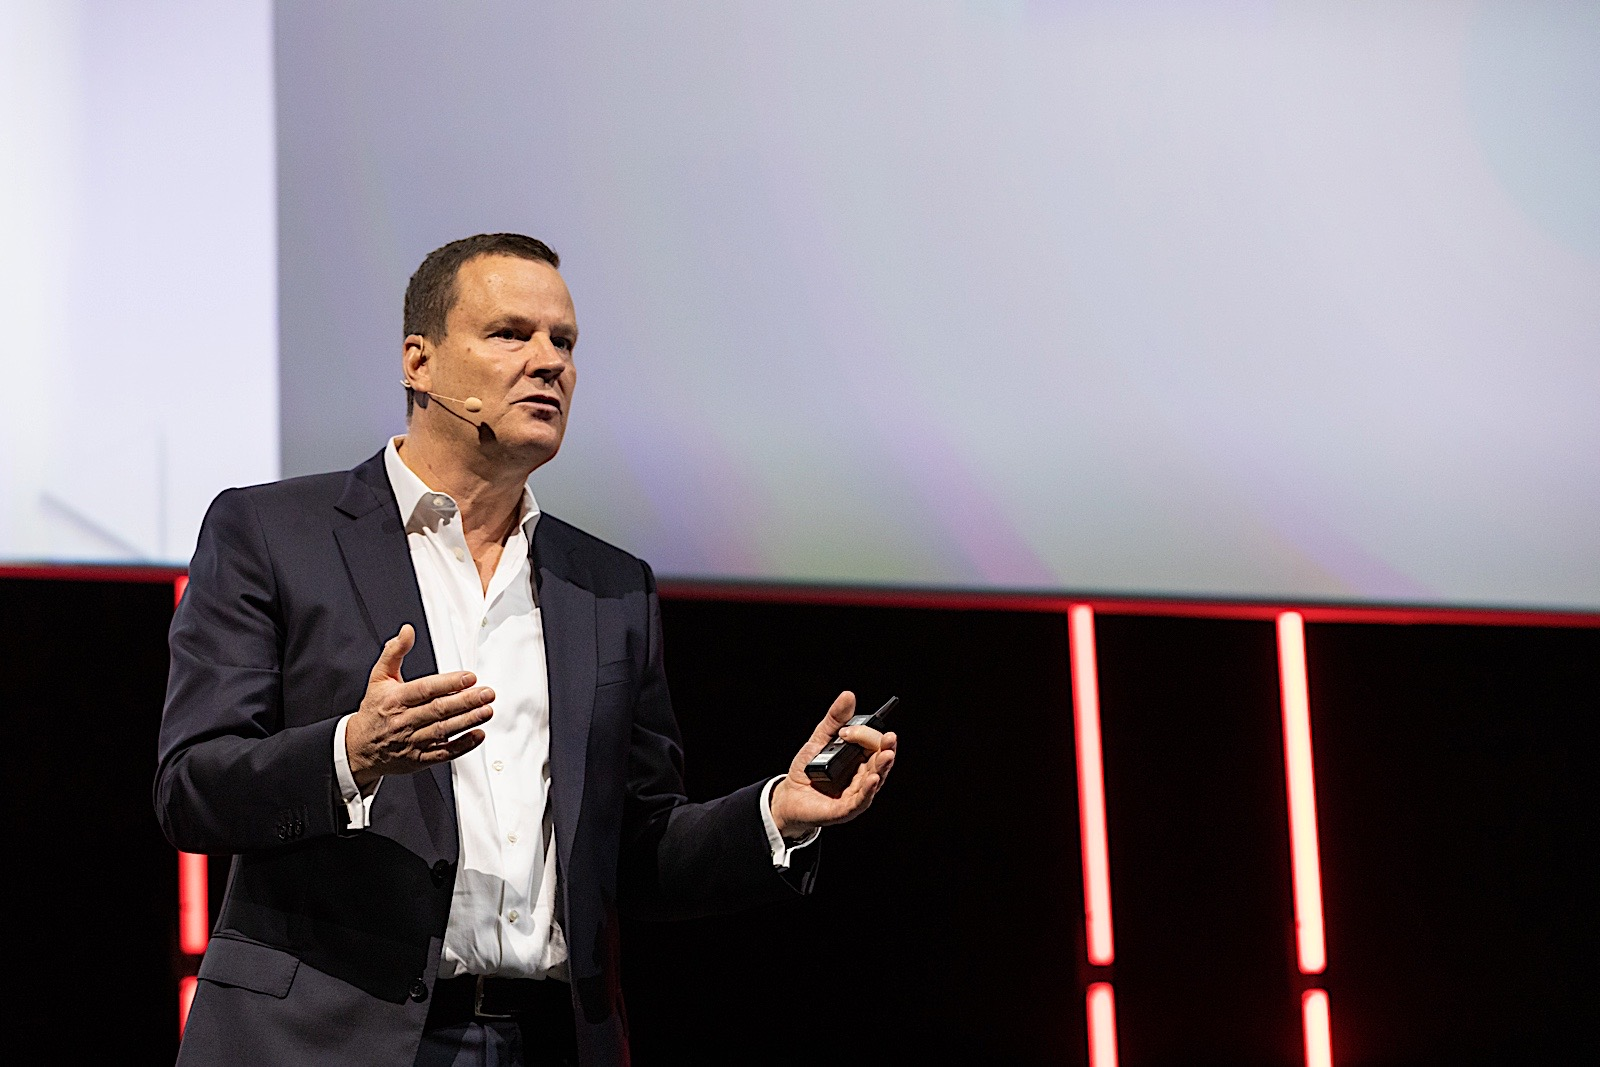 Peter Feld, GfK CEO, speaks about disruption, acceleration and data overload at IFA 2020